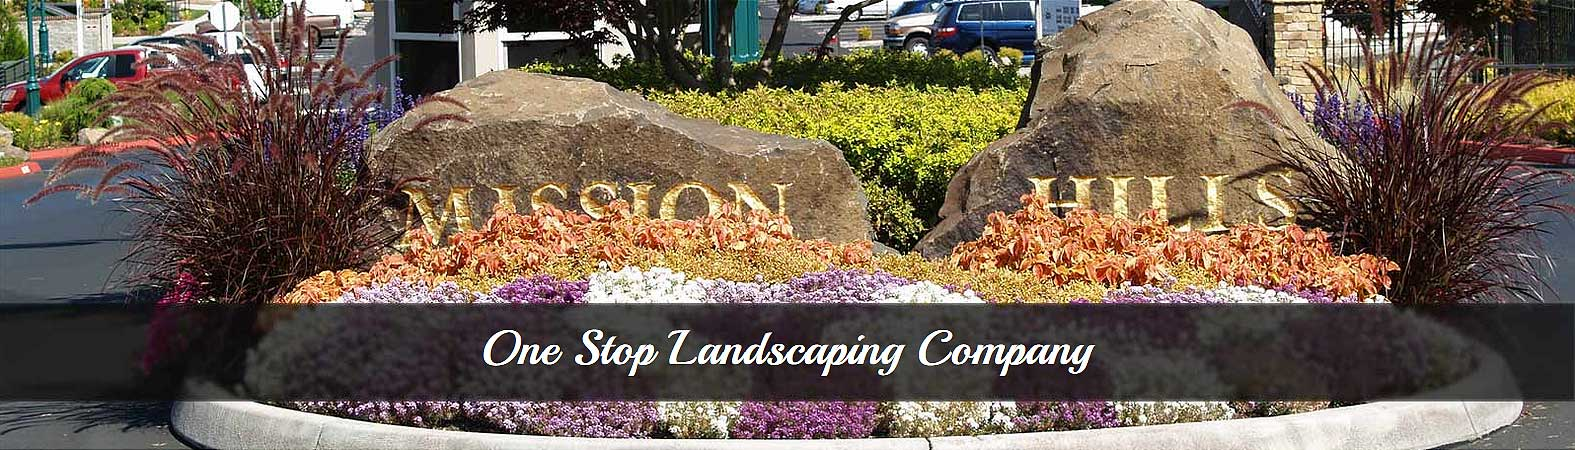 Your One Stop Landscaping Company